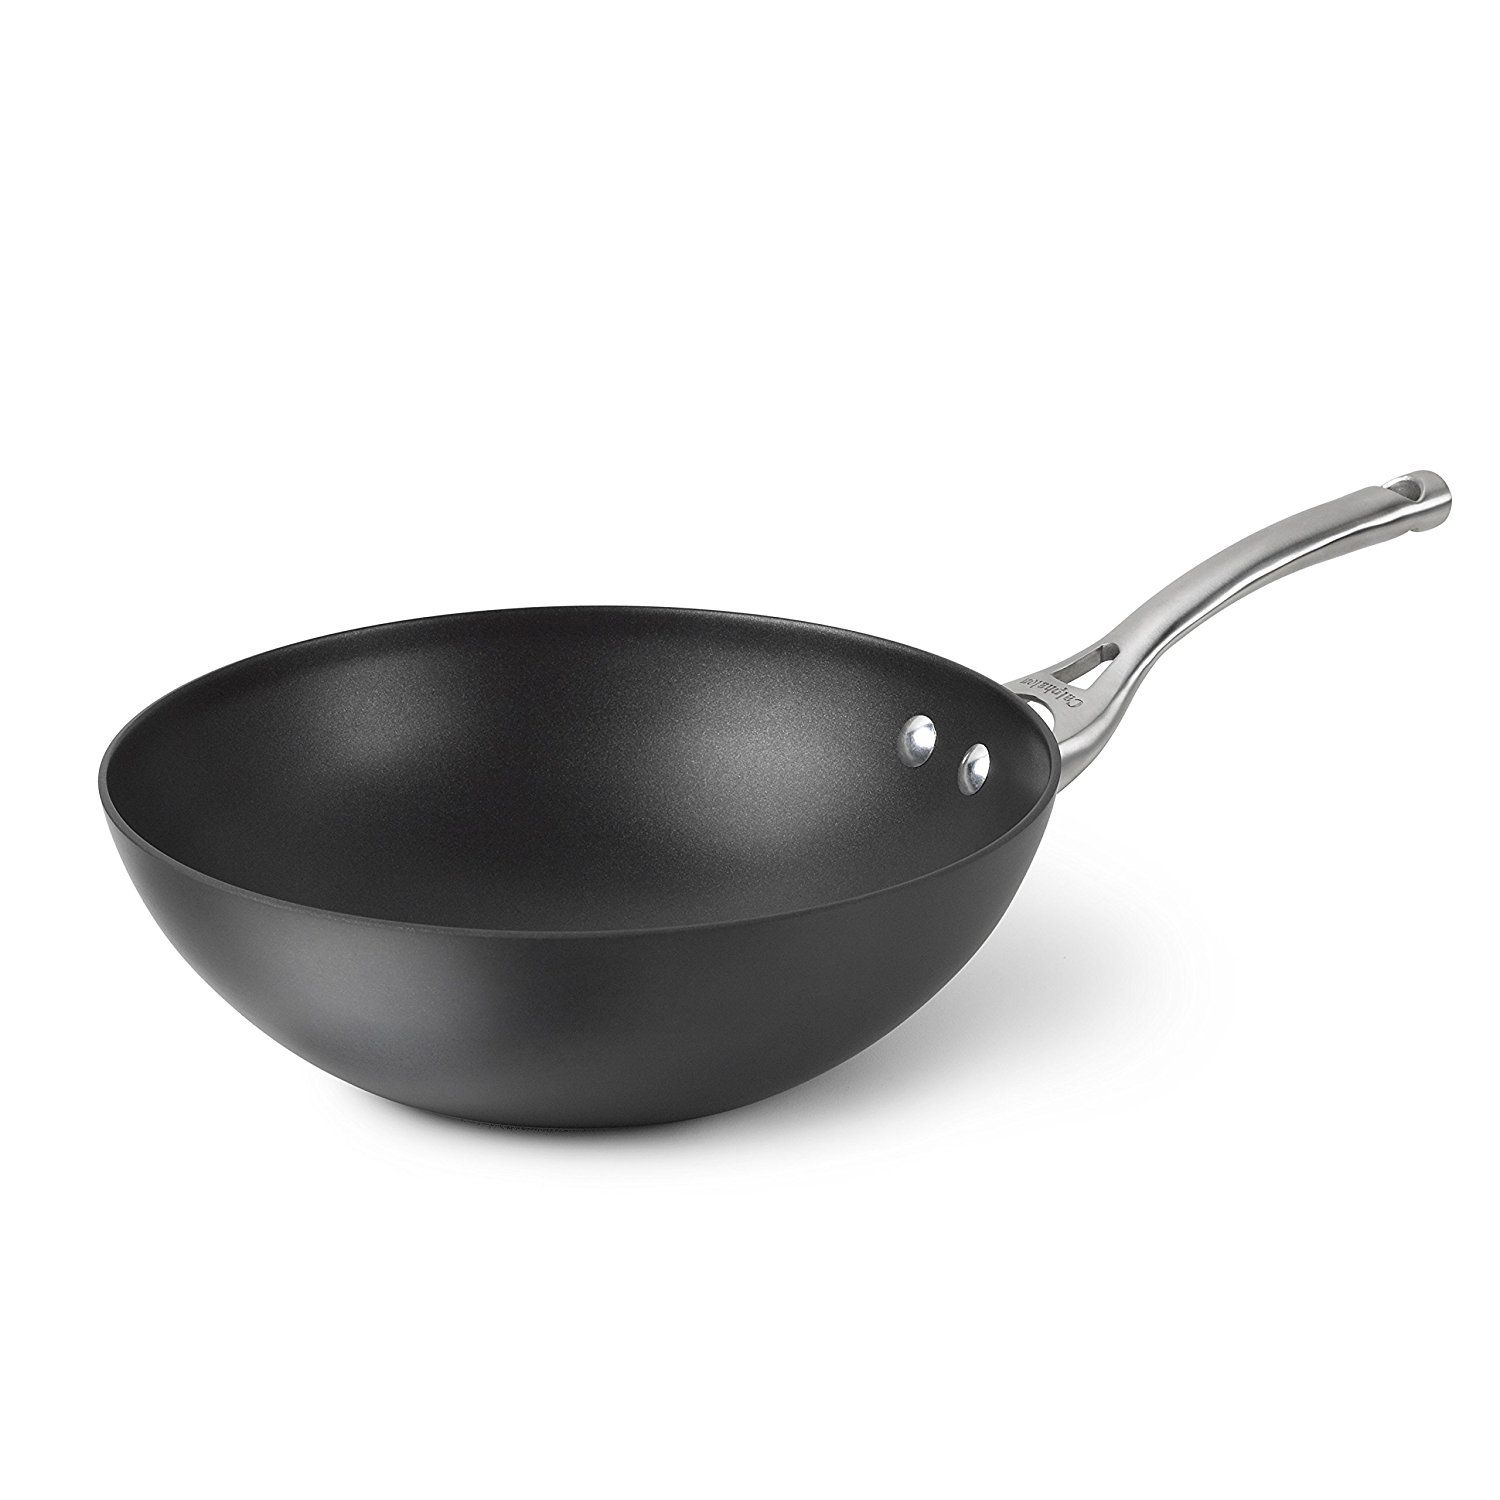 Calphalon Contemporary Hard-Anodized Aluminum Nonstick Cookware, Flat-Bottom Wok, 10-inch, Black